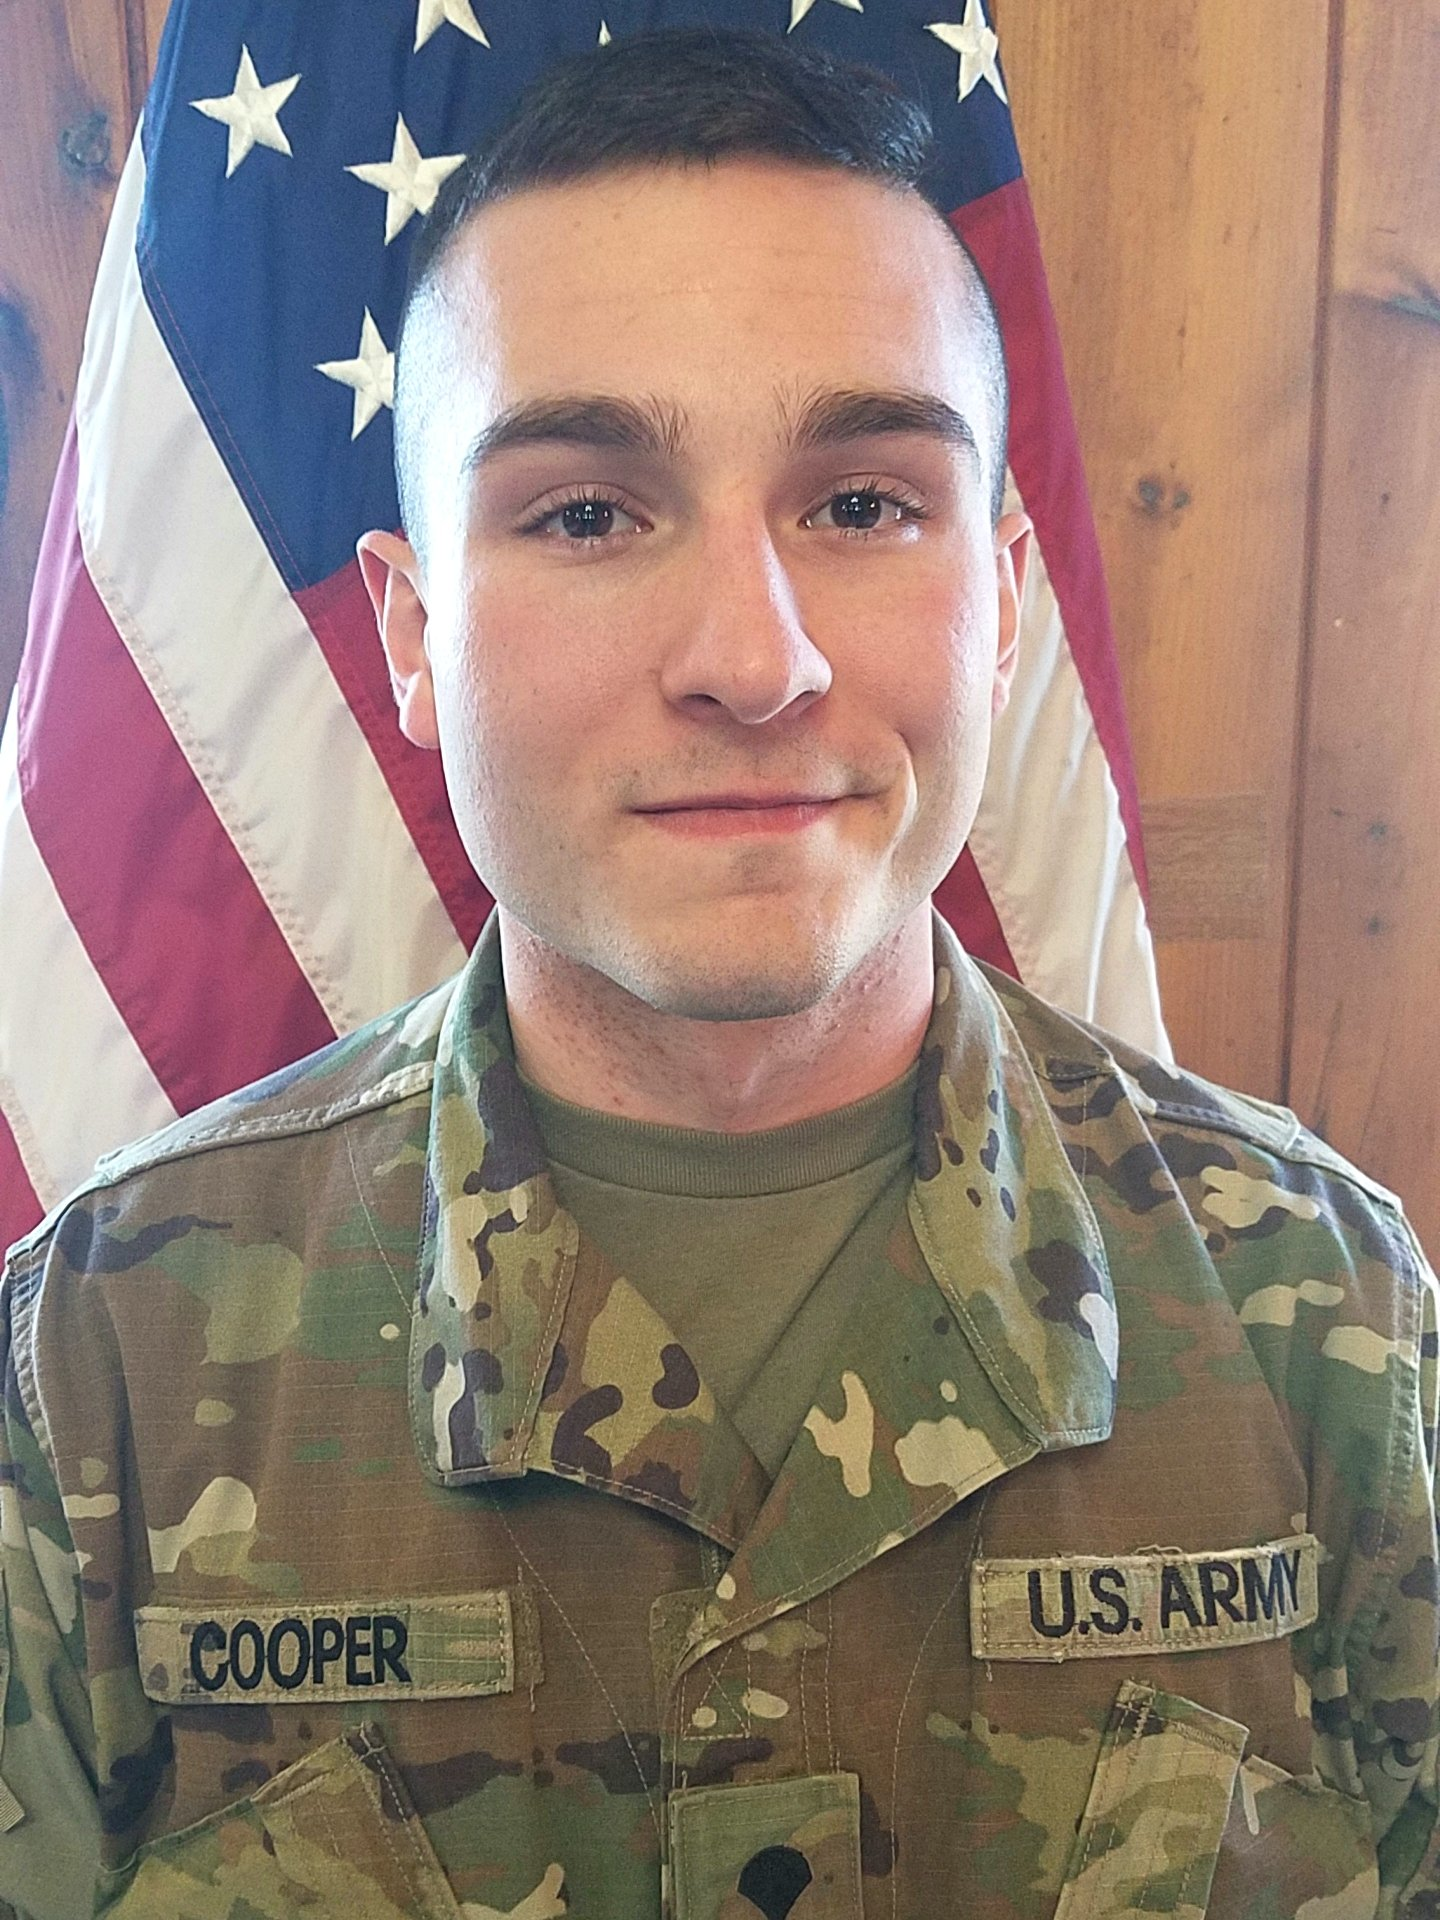 christopher cooper pa national guard